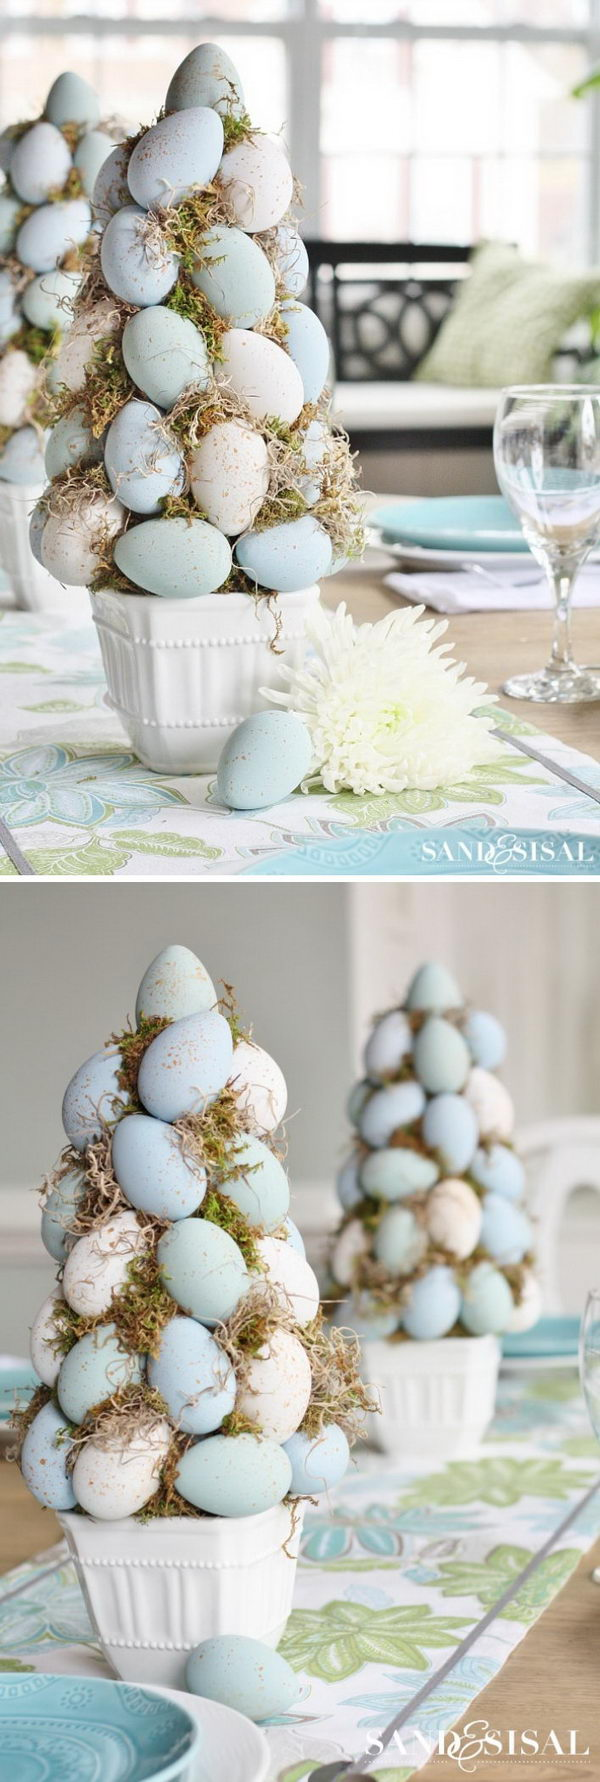 DIY Easter Egg Topiary Tree.